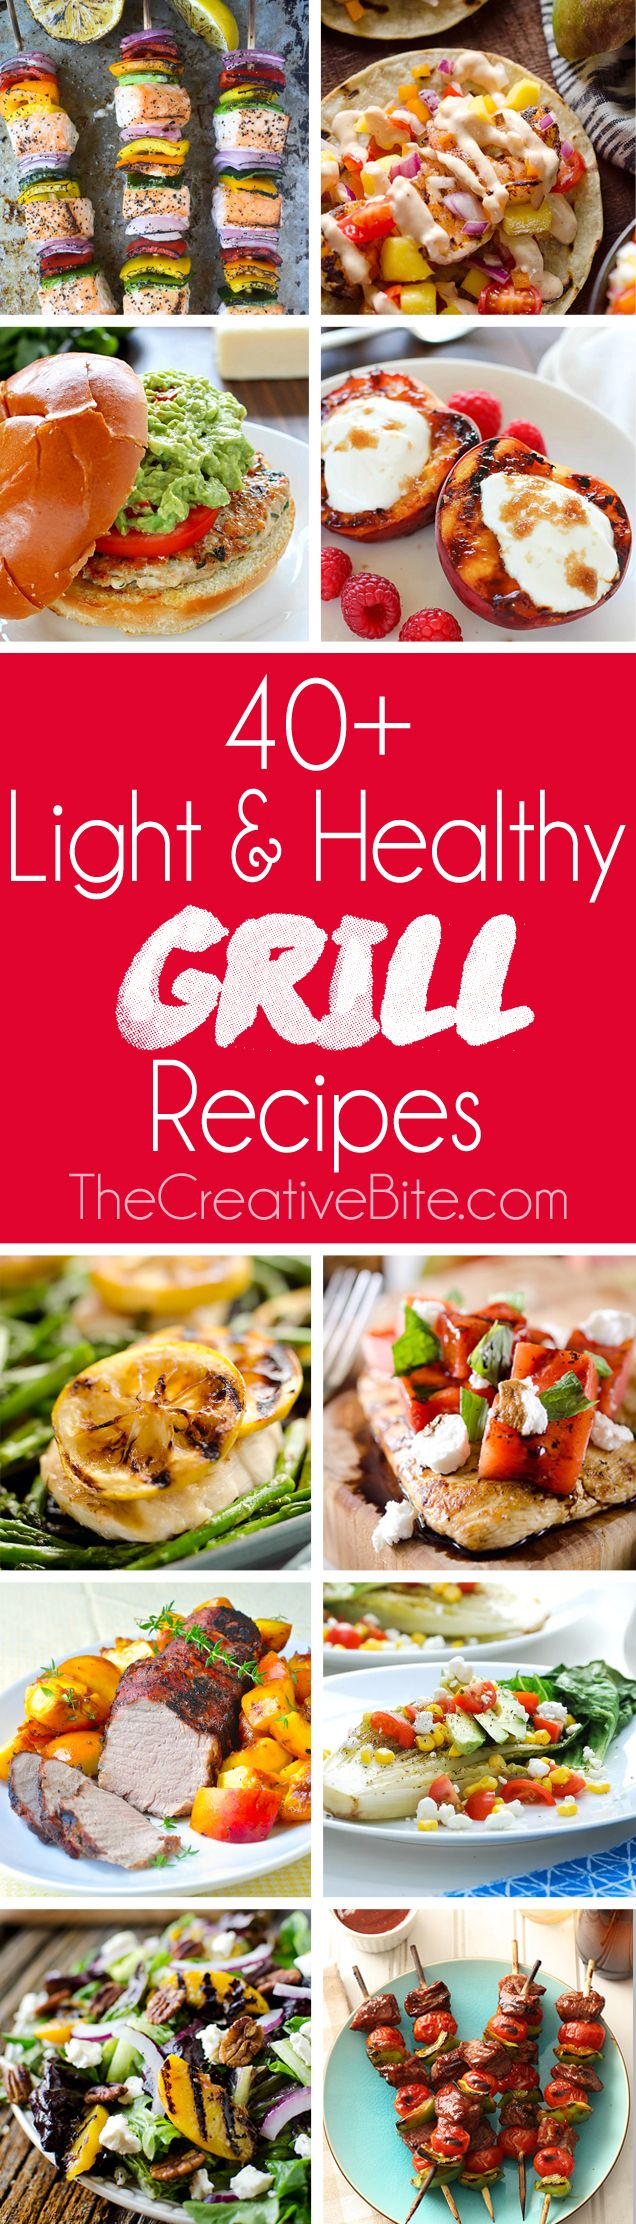 40+ Light & Healthy Grill Recipes are a great roundup of meals with everything from burgers, tacos & chicken to kebabs and foil packets! #Healthy #Light #Grill